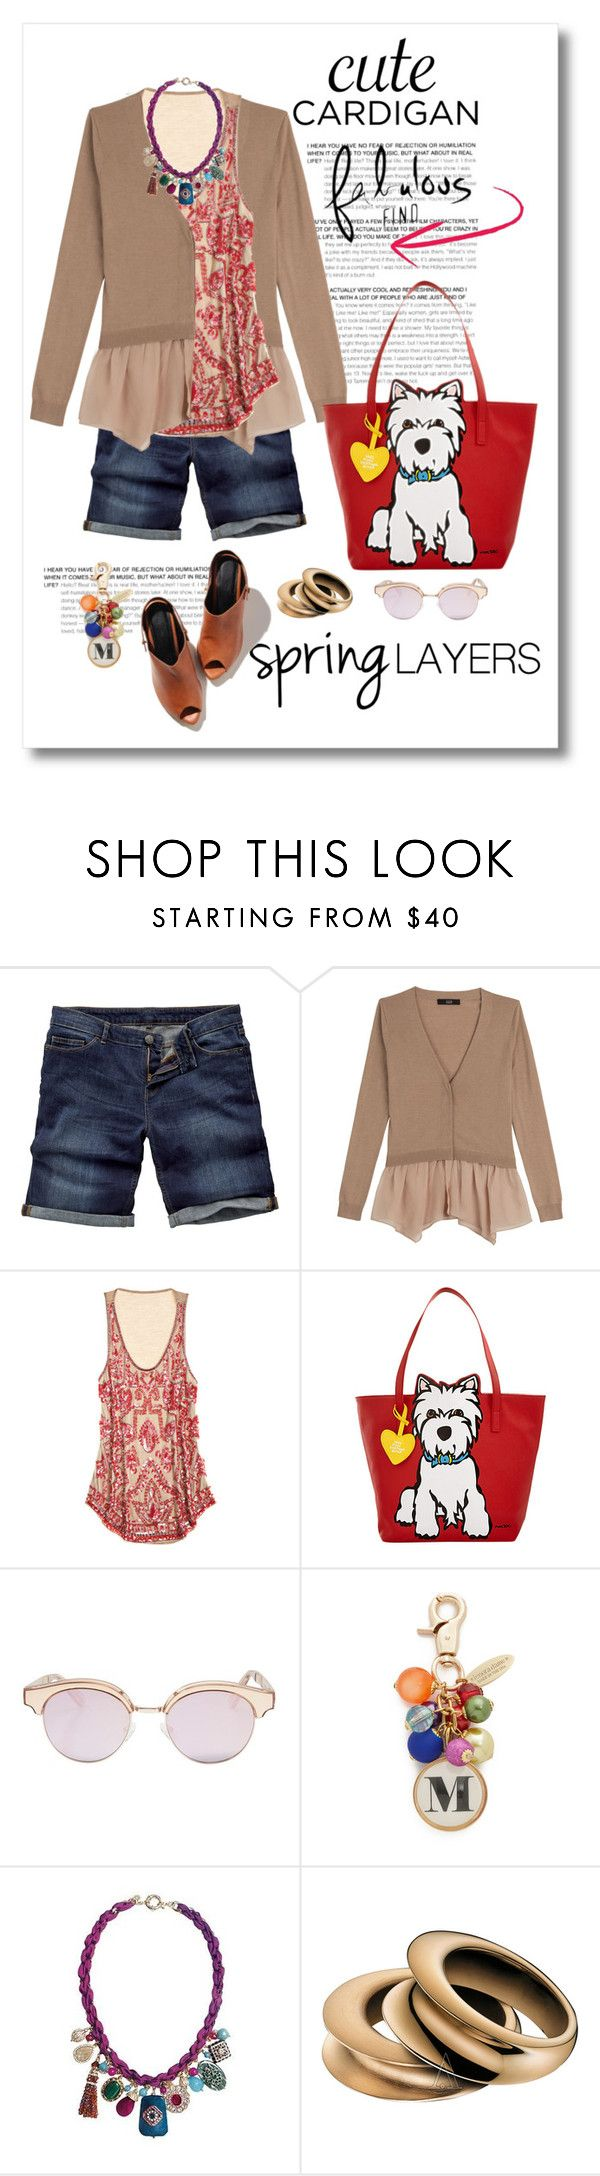 """Cute Spring Cardis"" by mellapr ❤ liked on Polyvore featuring Fat Face, Steffen Schraut, Calypso St. Barth, Marc Tetro, Le Specs, Lenora Dame, Calvin Klein, cutecardigan and springlayers"